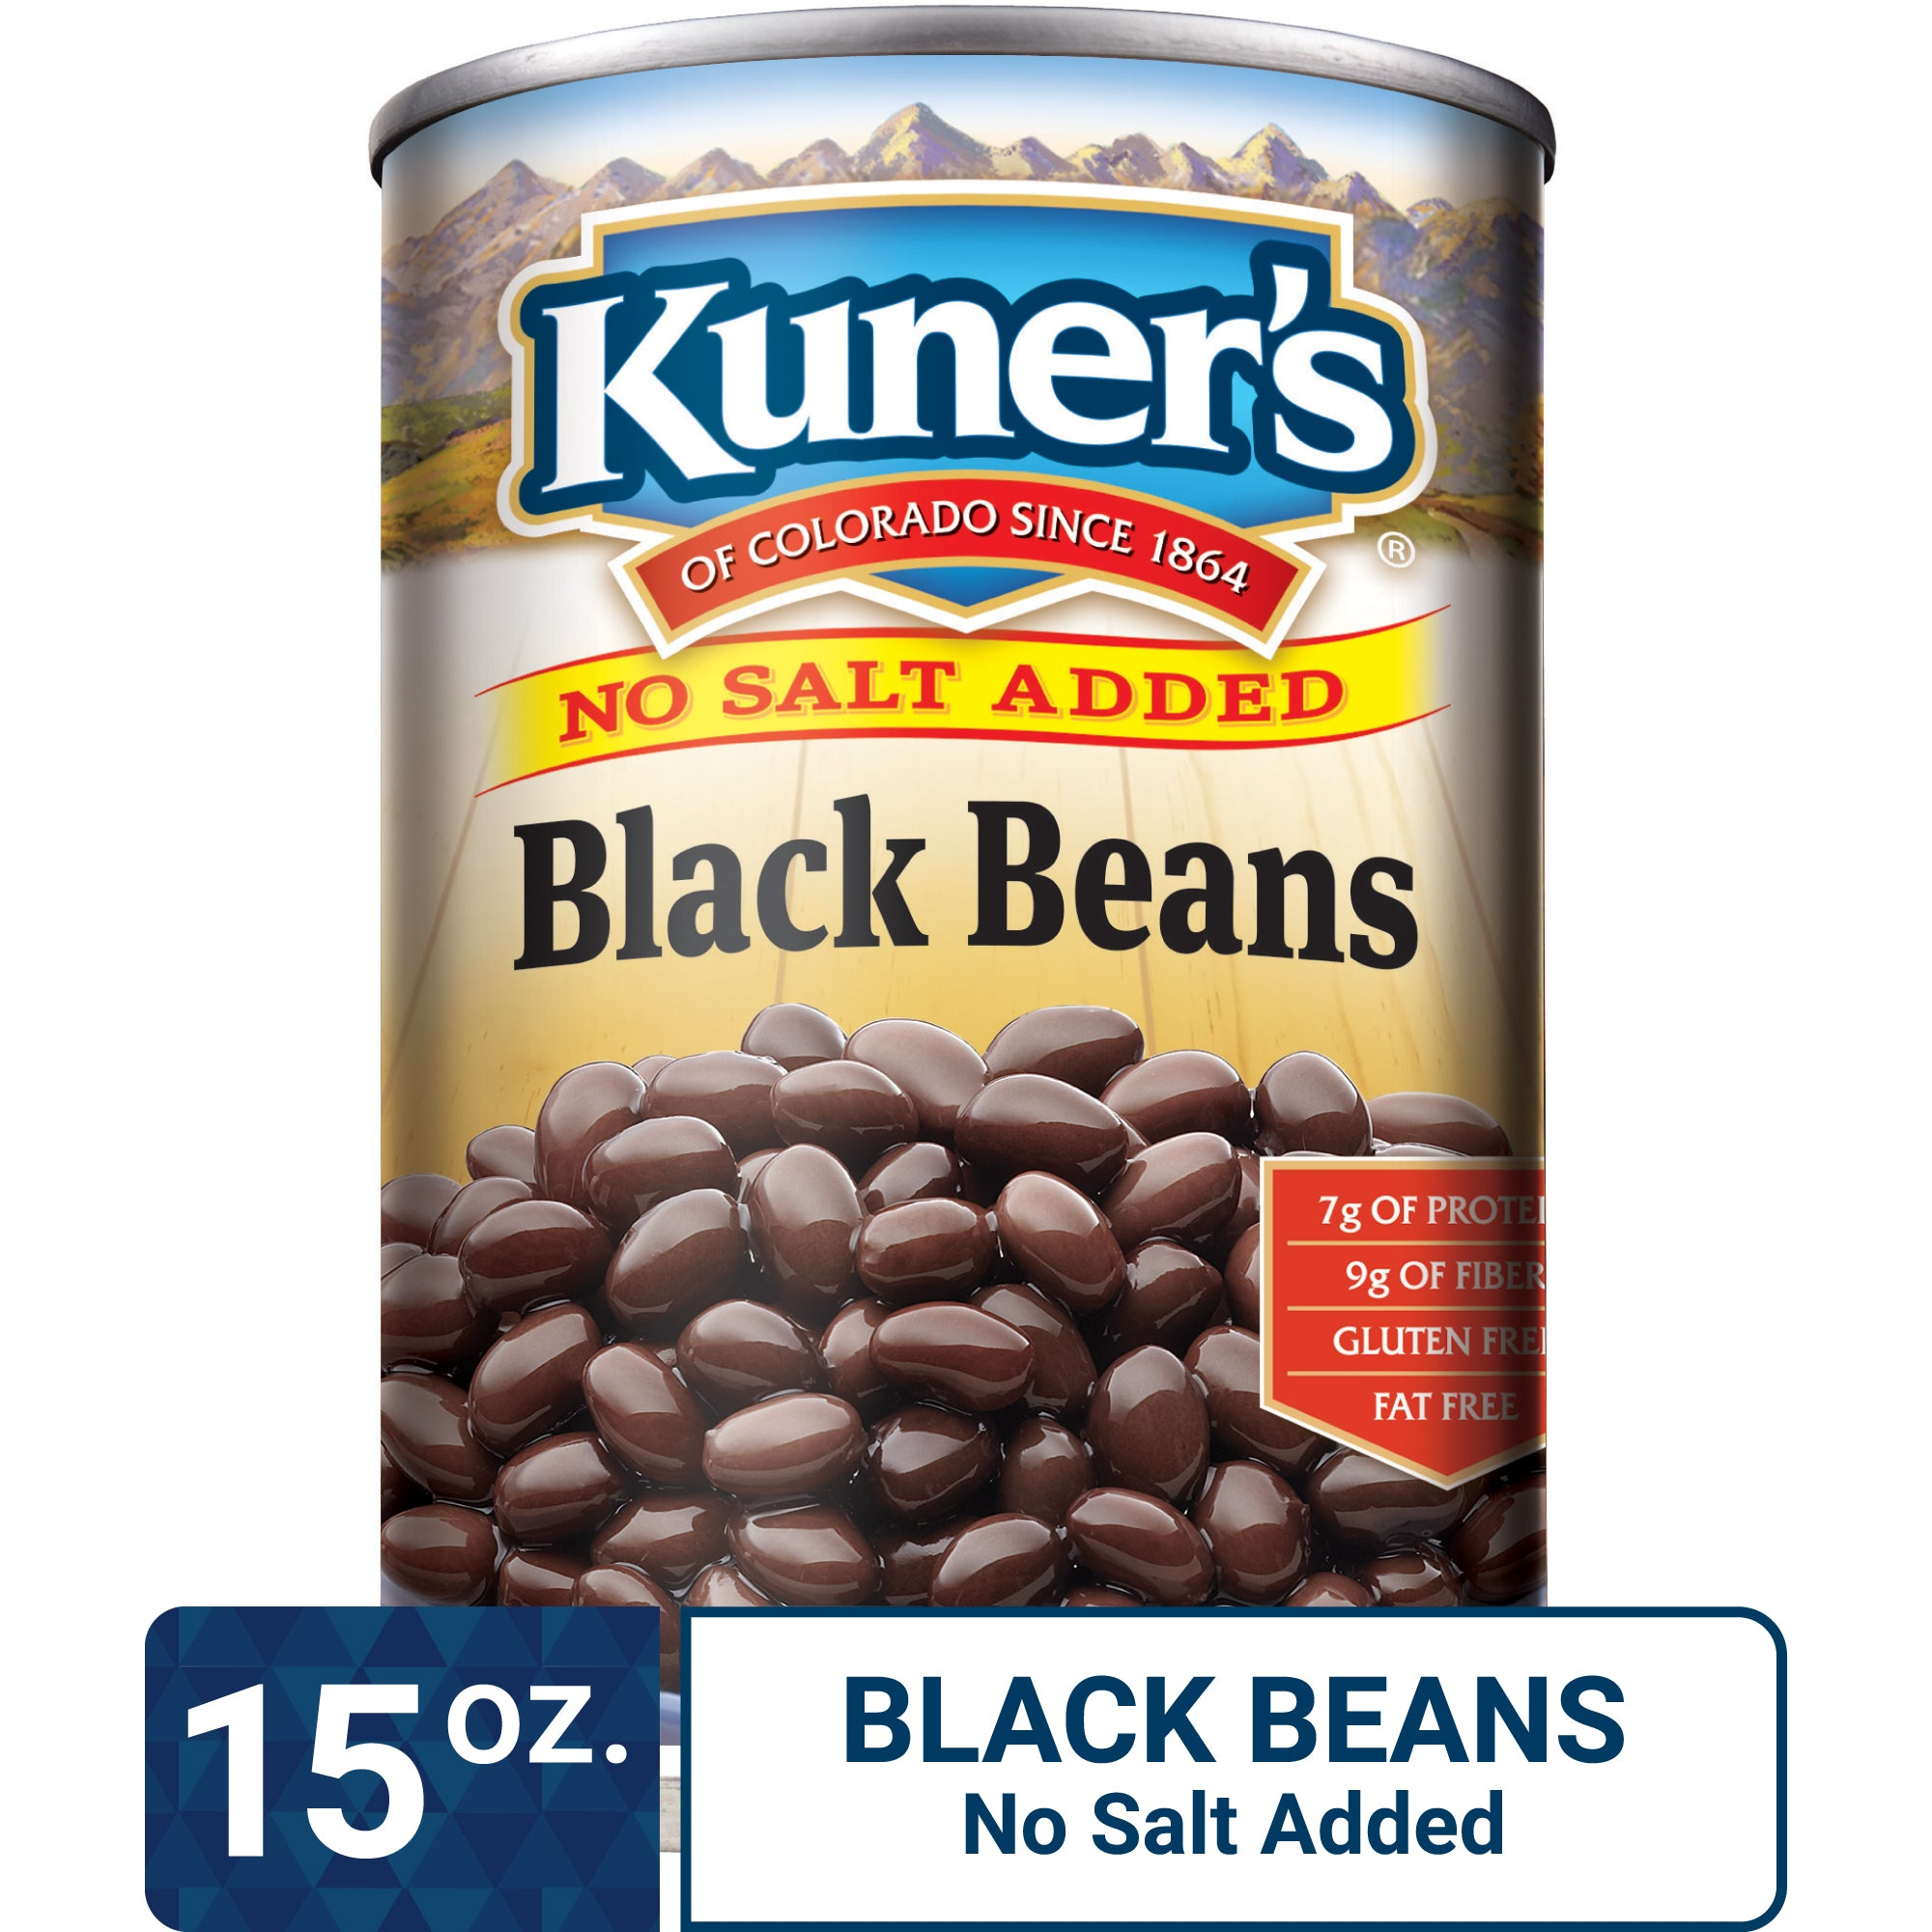 Kuner's Black Beans No Salt Added, 15oz (Pack of 12)